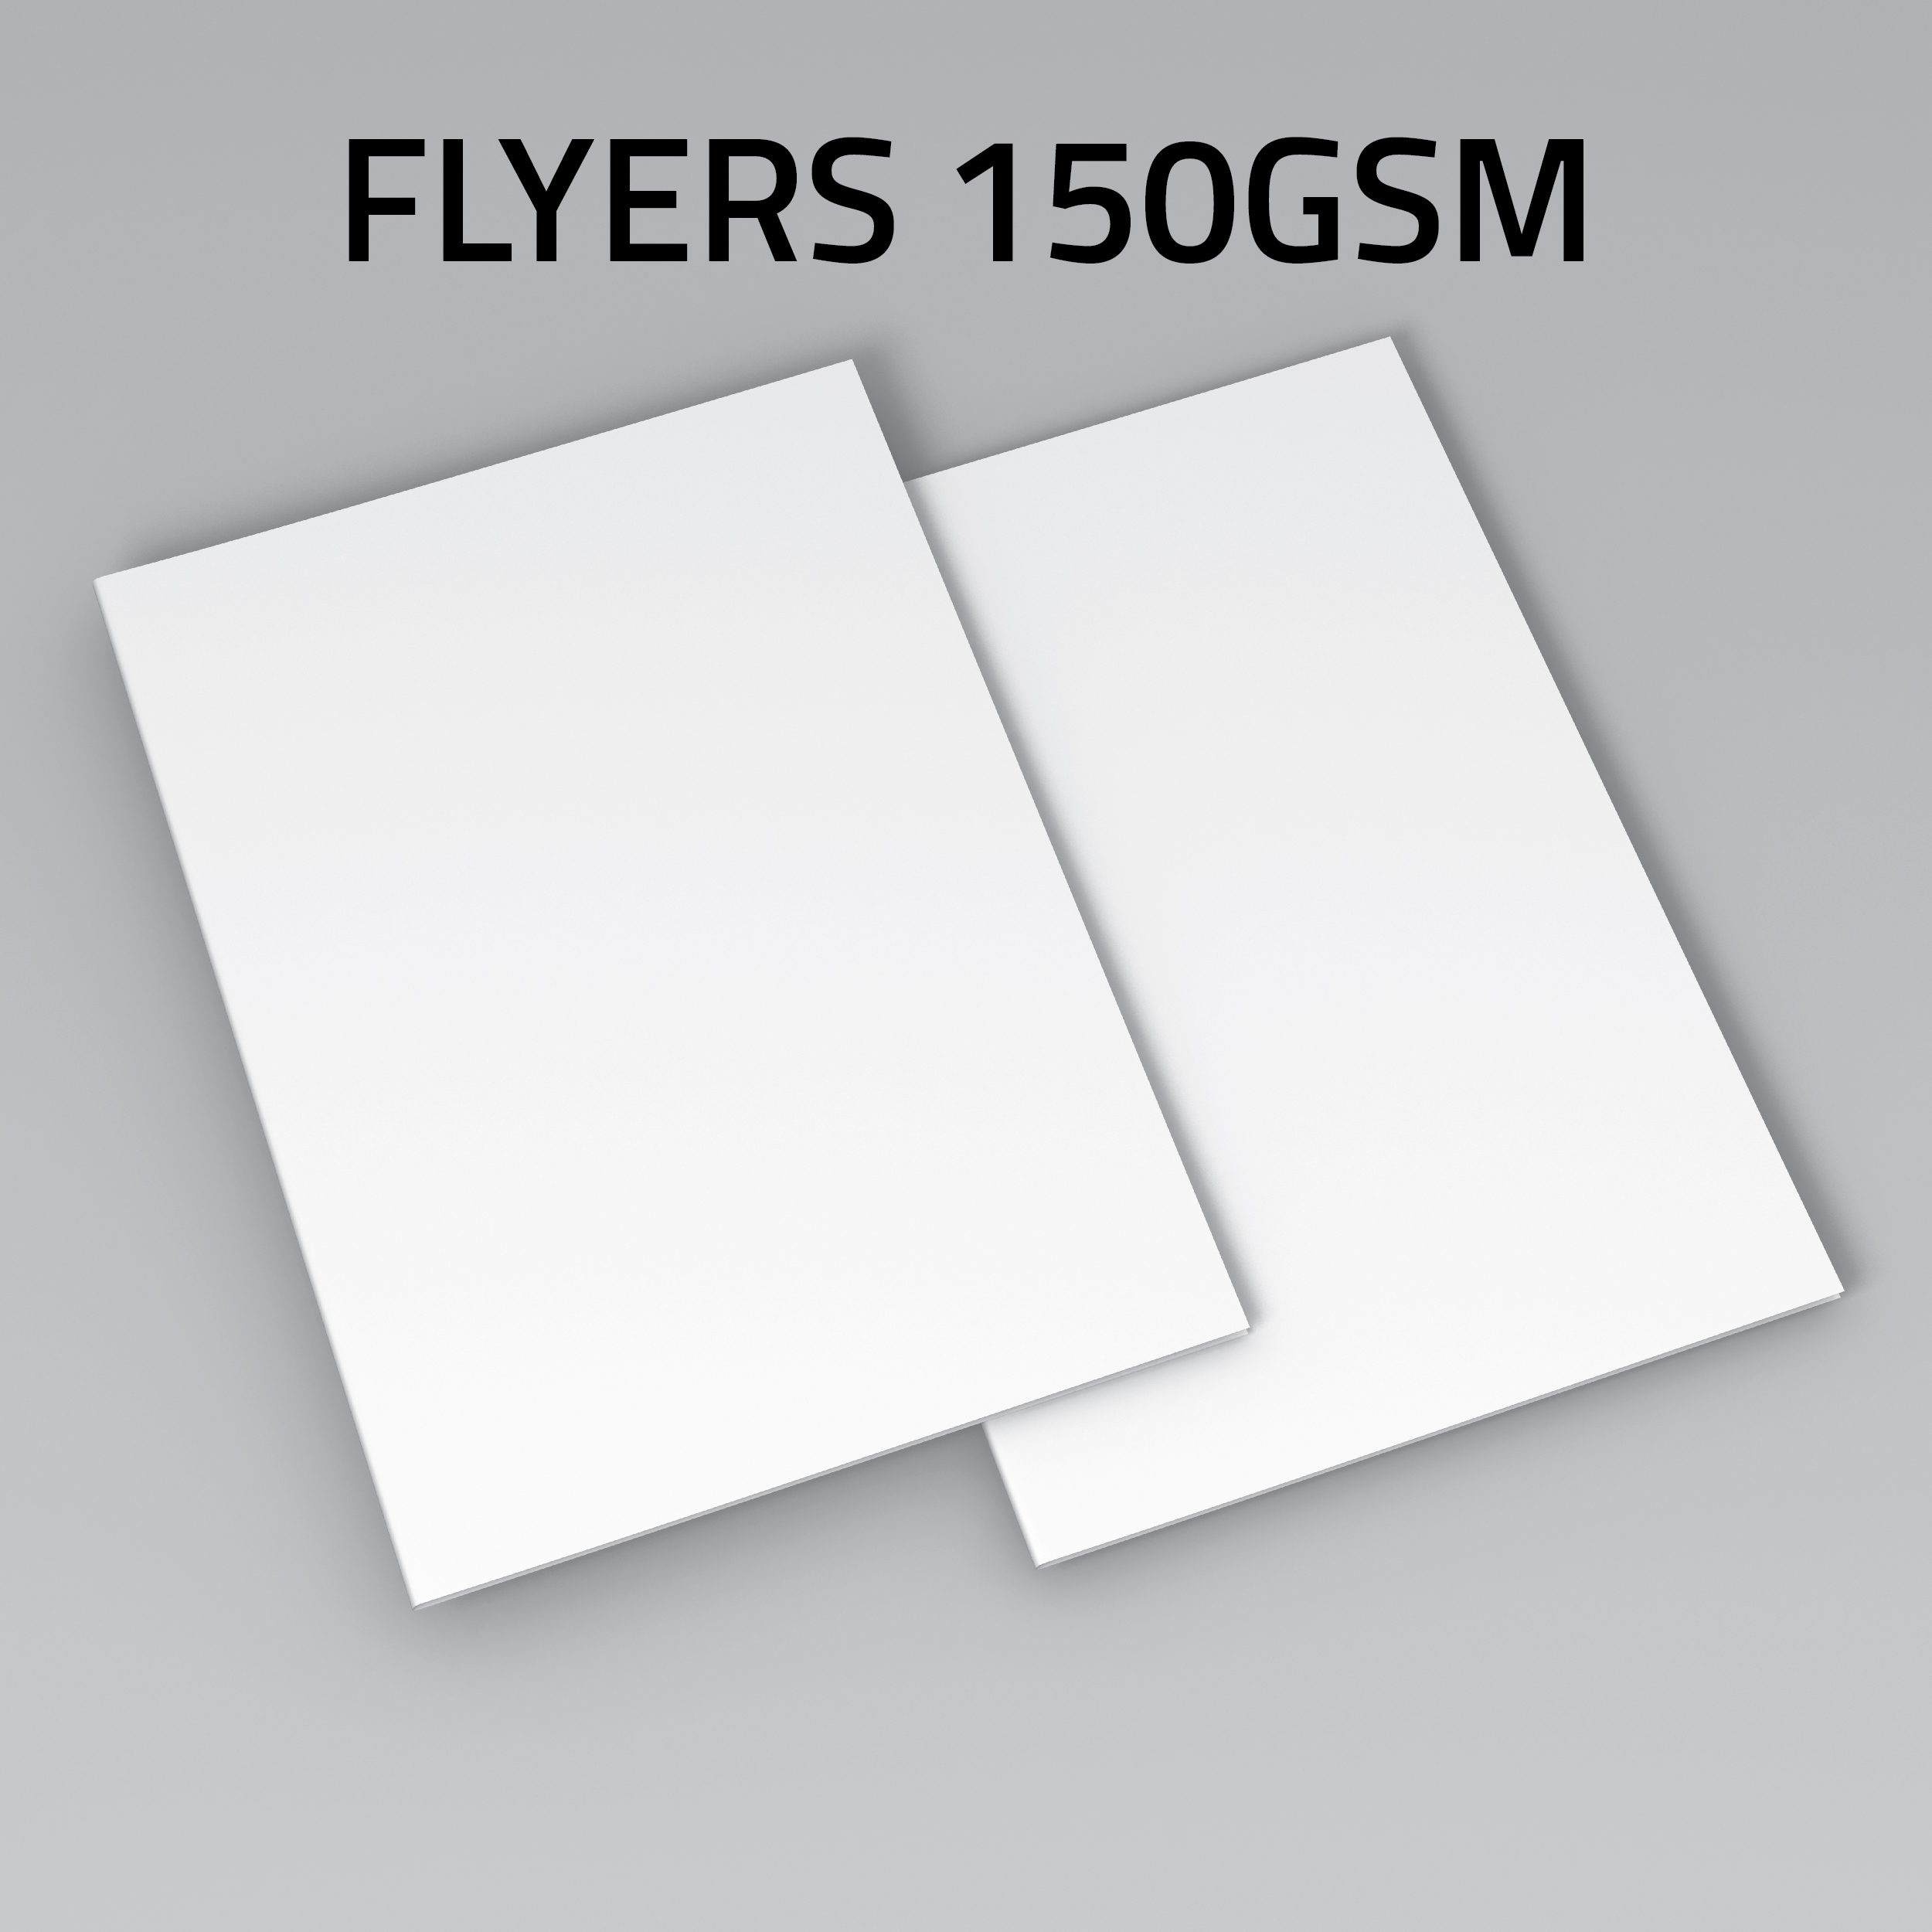 Flyers 150gsm gloss or matt